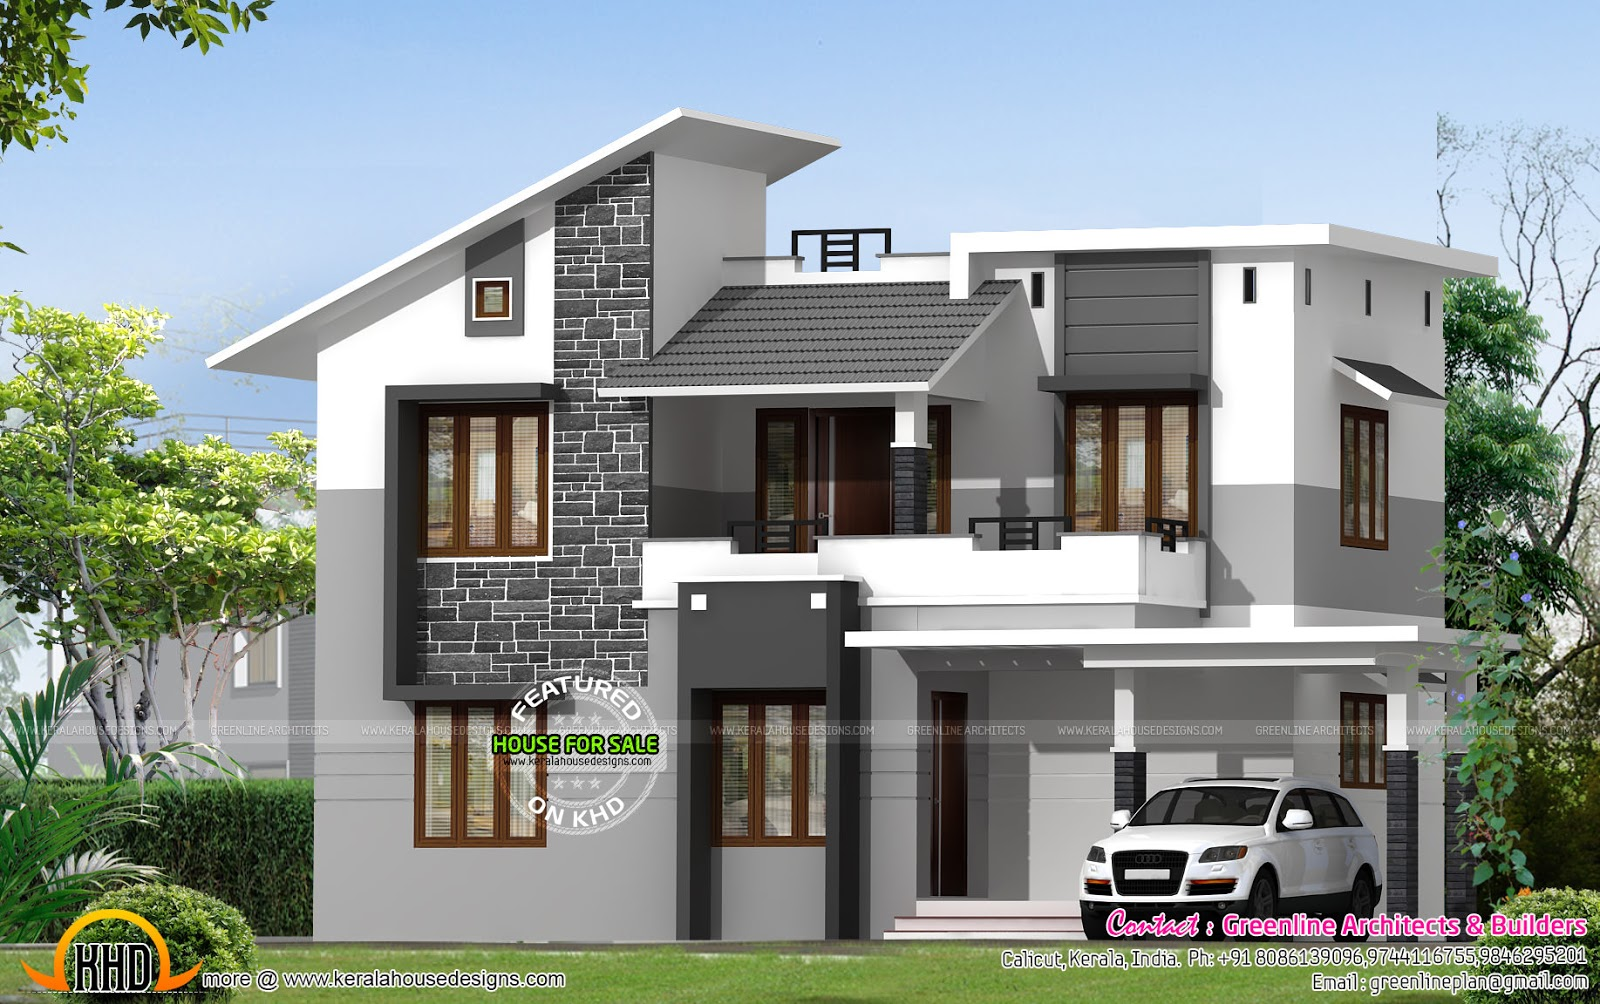 2 types of villa home plans Kerala home design and floor